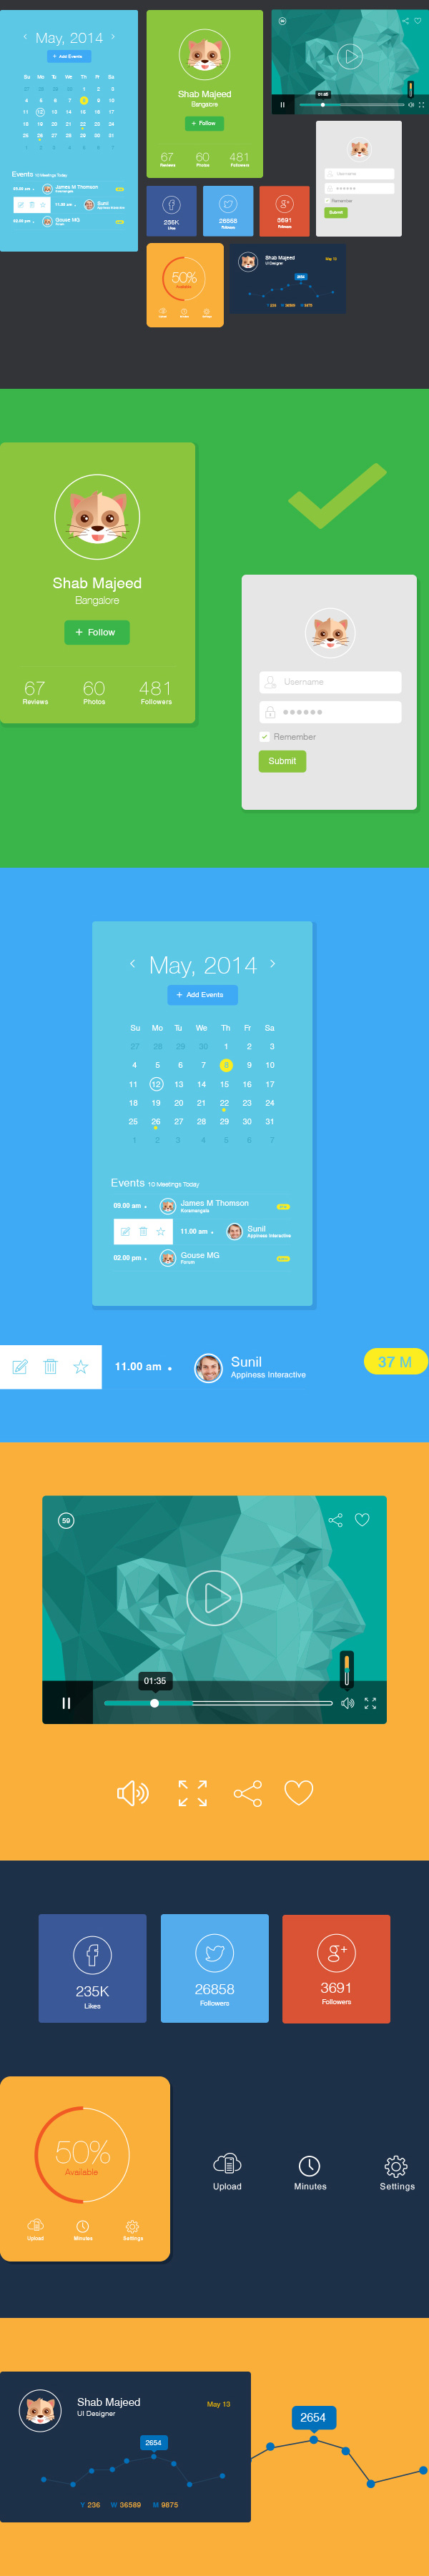 2.Flat UI Design Elements